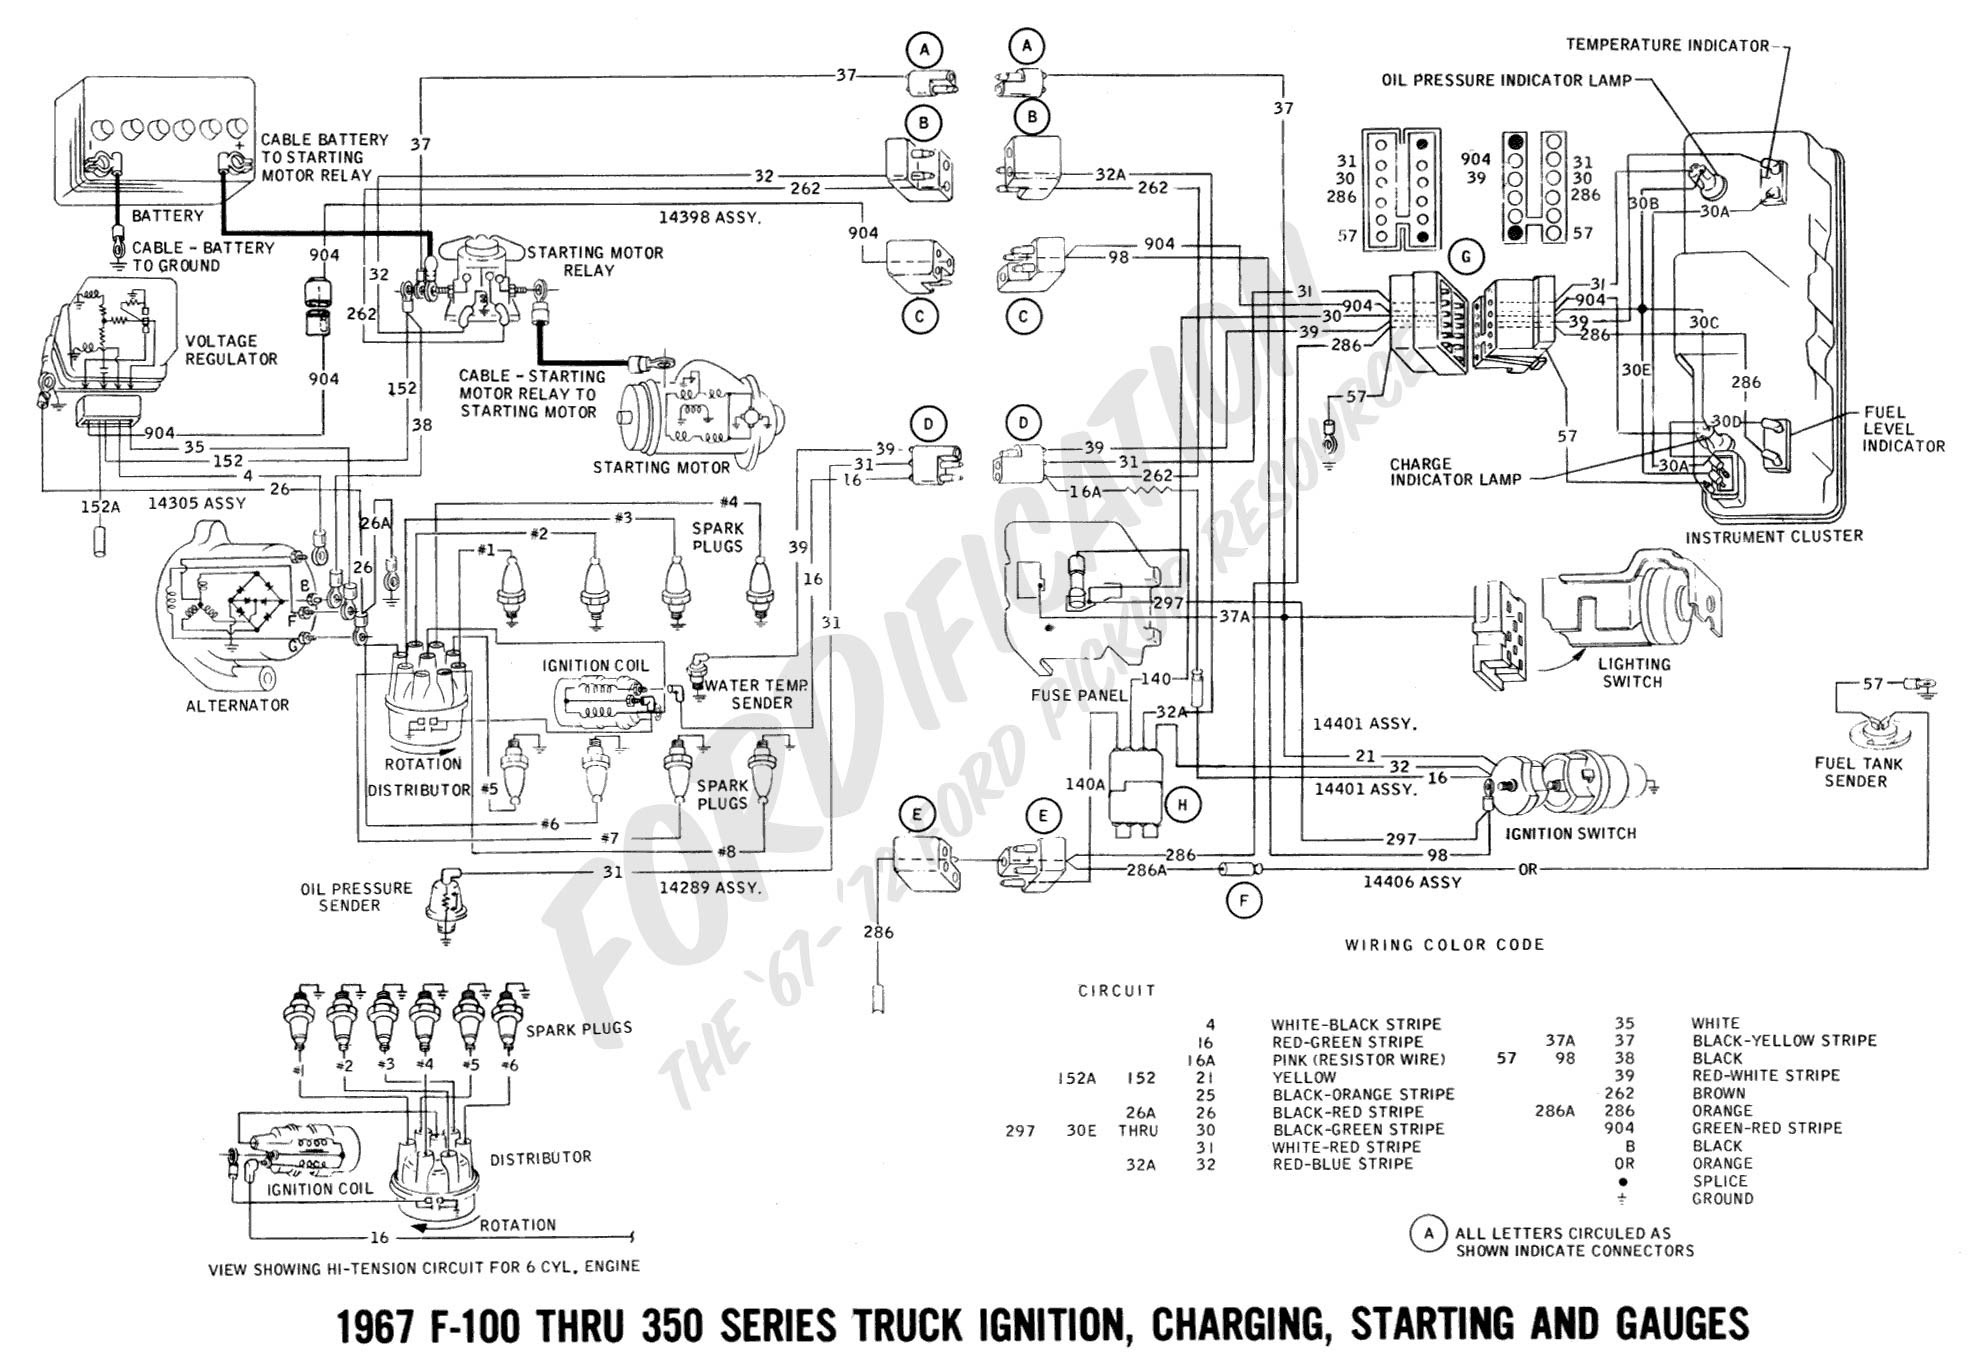 DIAGRAM] Ford F 350 Steering Column Wiring Diagram FULL Version HD Quality Wiring  Diagram - SUNDIAGRAM.LINEAKEBAP.ITsundiagram.lineakebap.it